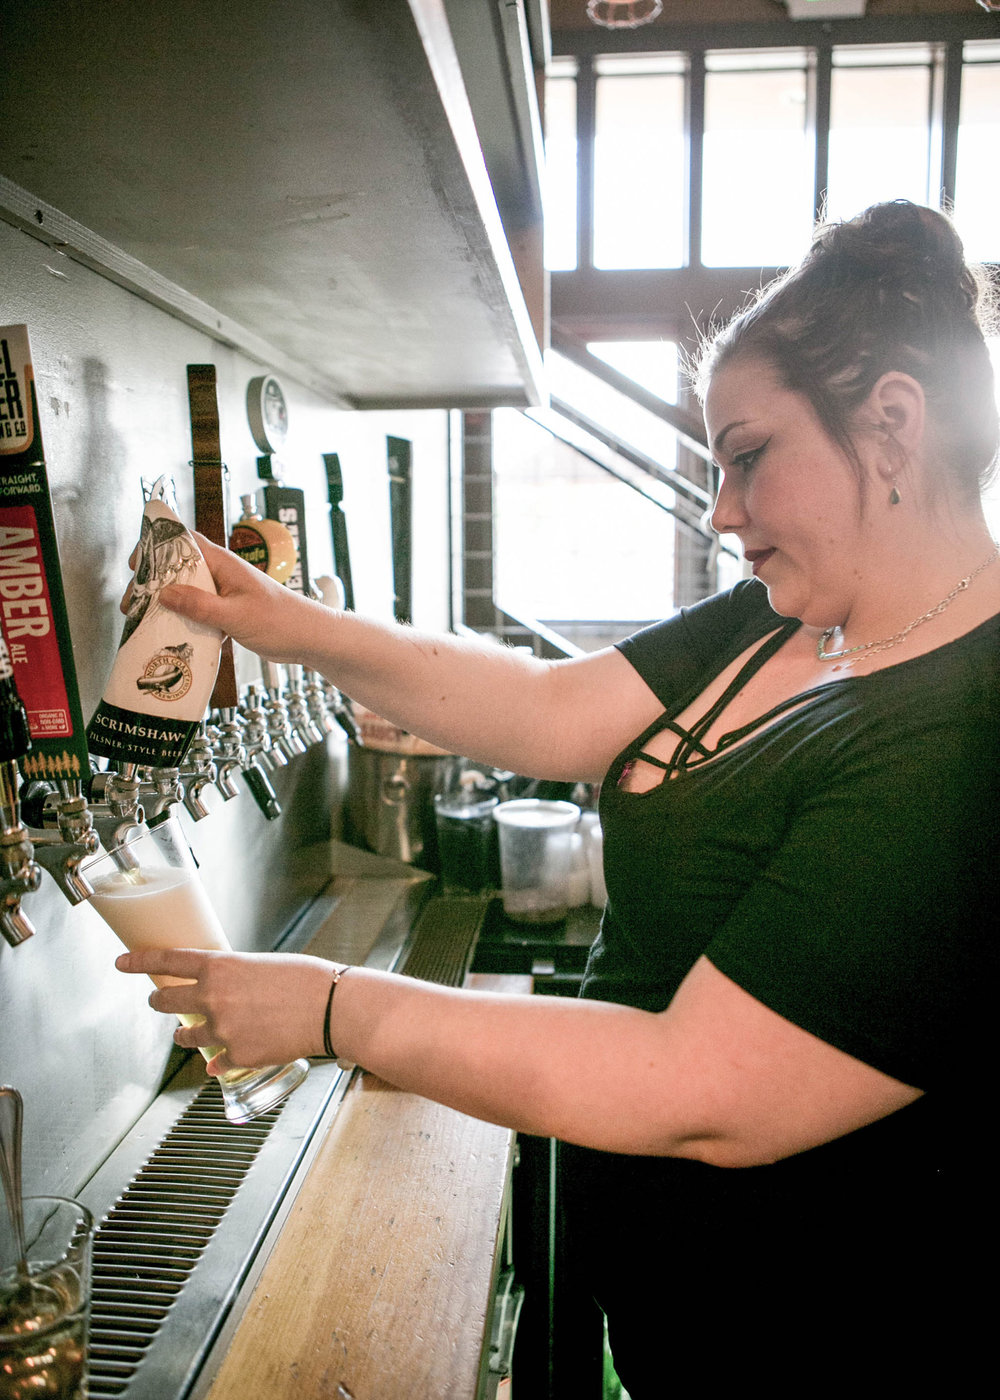 Pouring beer from a tap at Cultivo Restaurant in Ukiah, CA